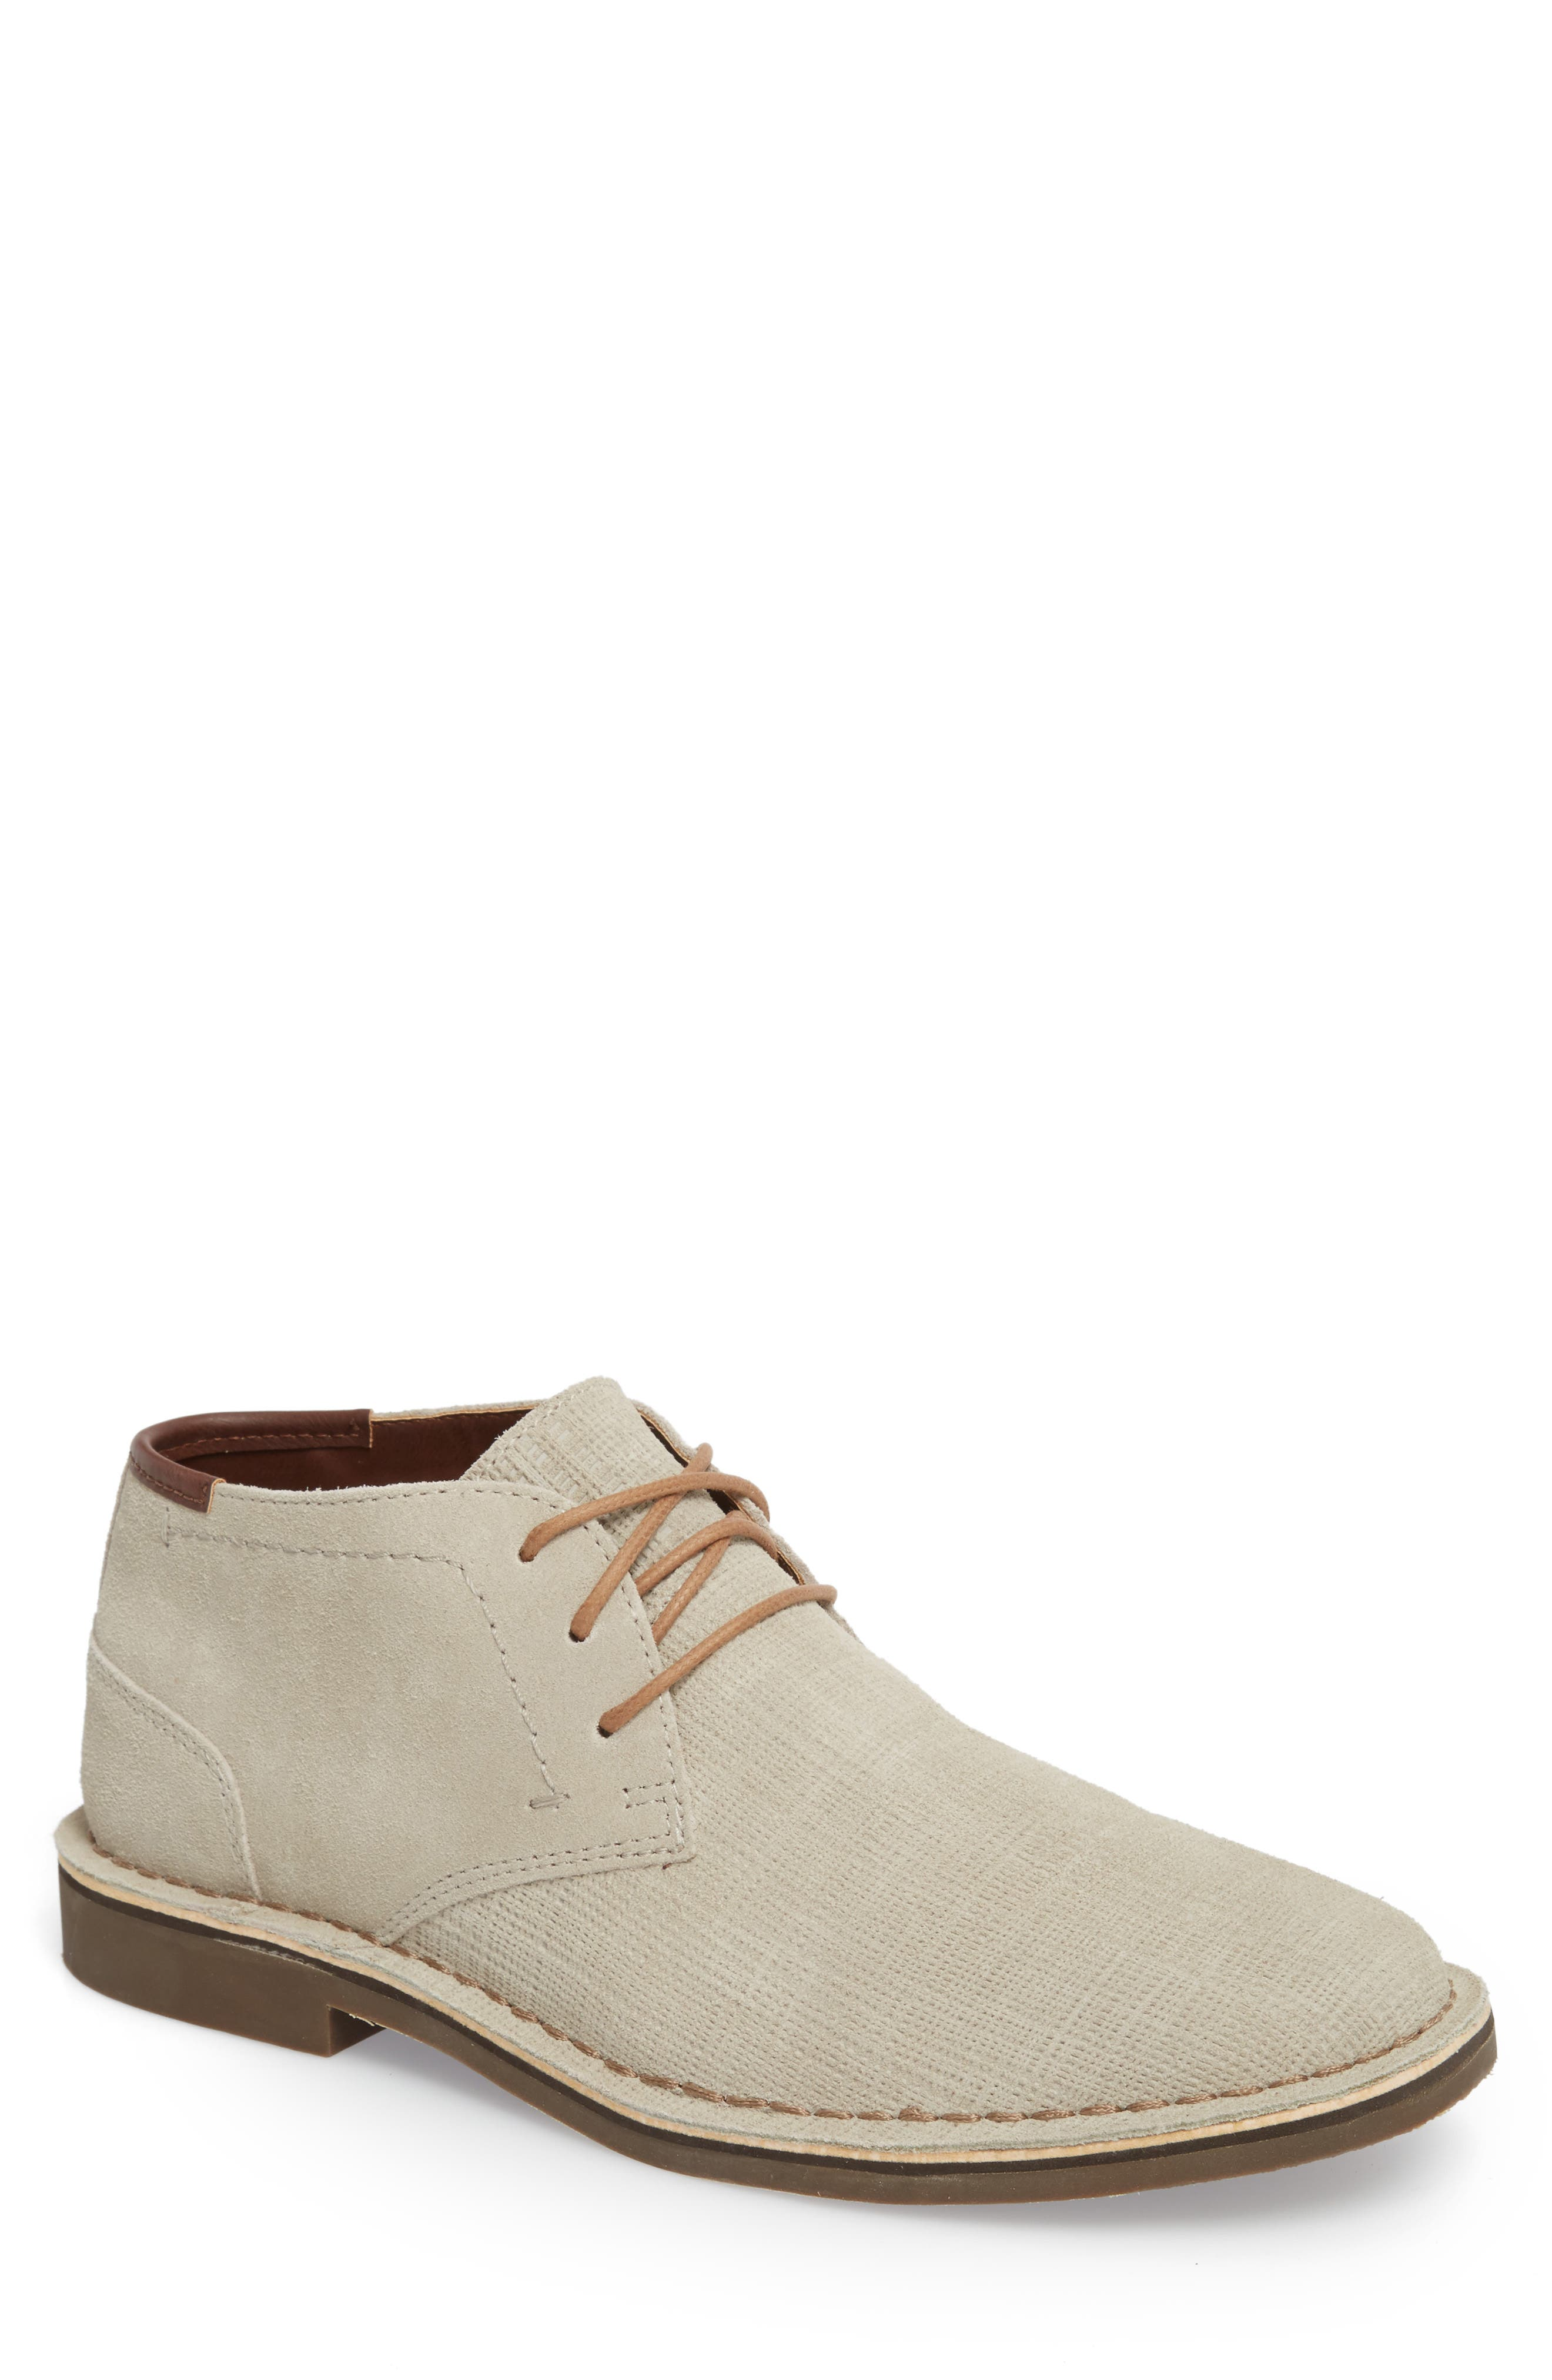 Desert Sun Textured Chukka Boot,                             Main thumbnail 2, color,